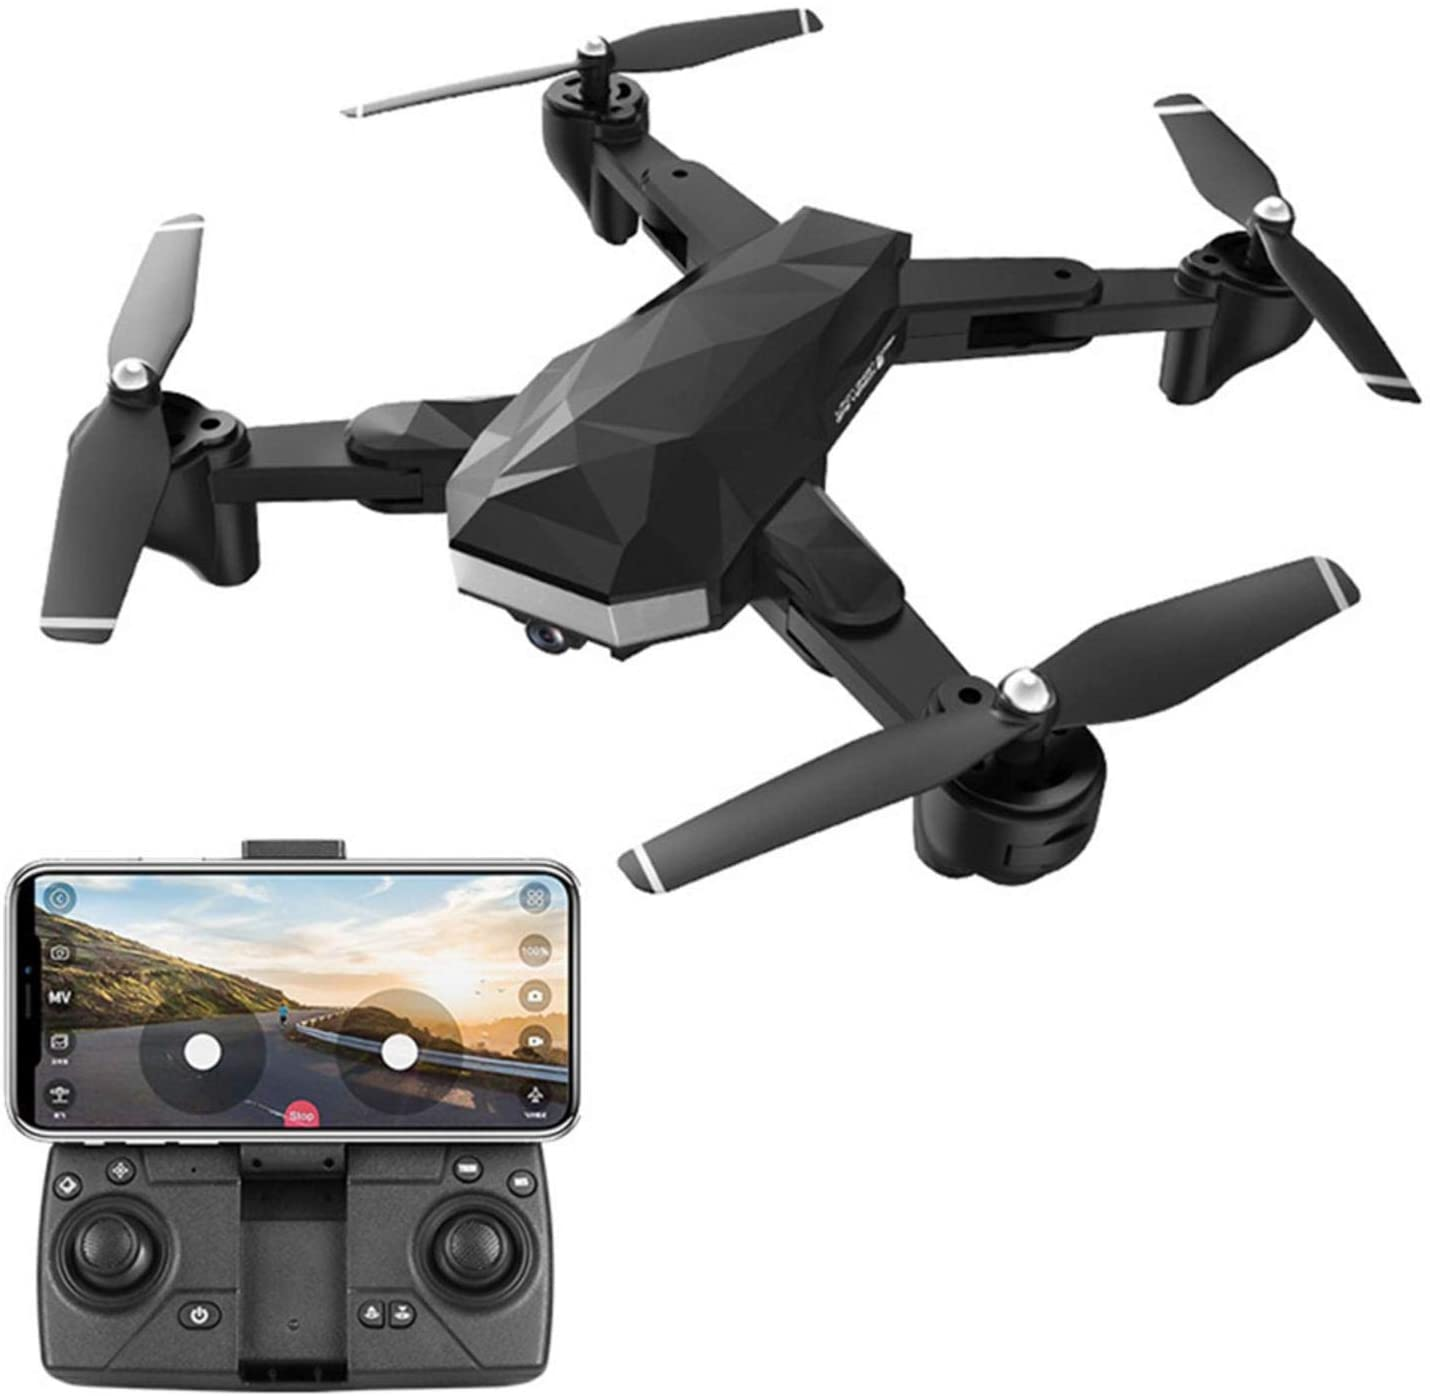 shuaiyin Drone with Dual High-Definition Camera, Foldable Remote Control Quadcopter, Takes Off and Lands with One Click, for Children Beginners Boys